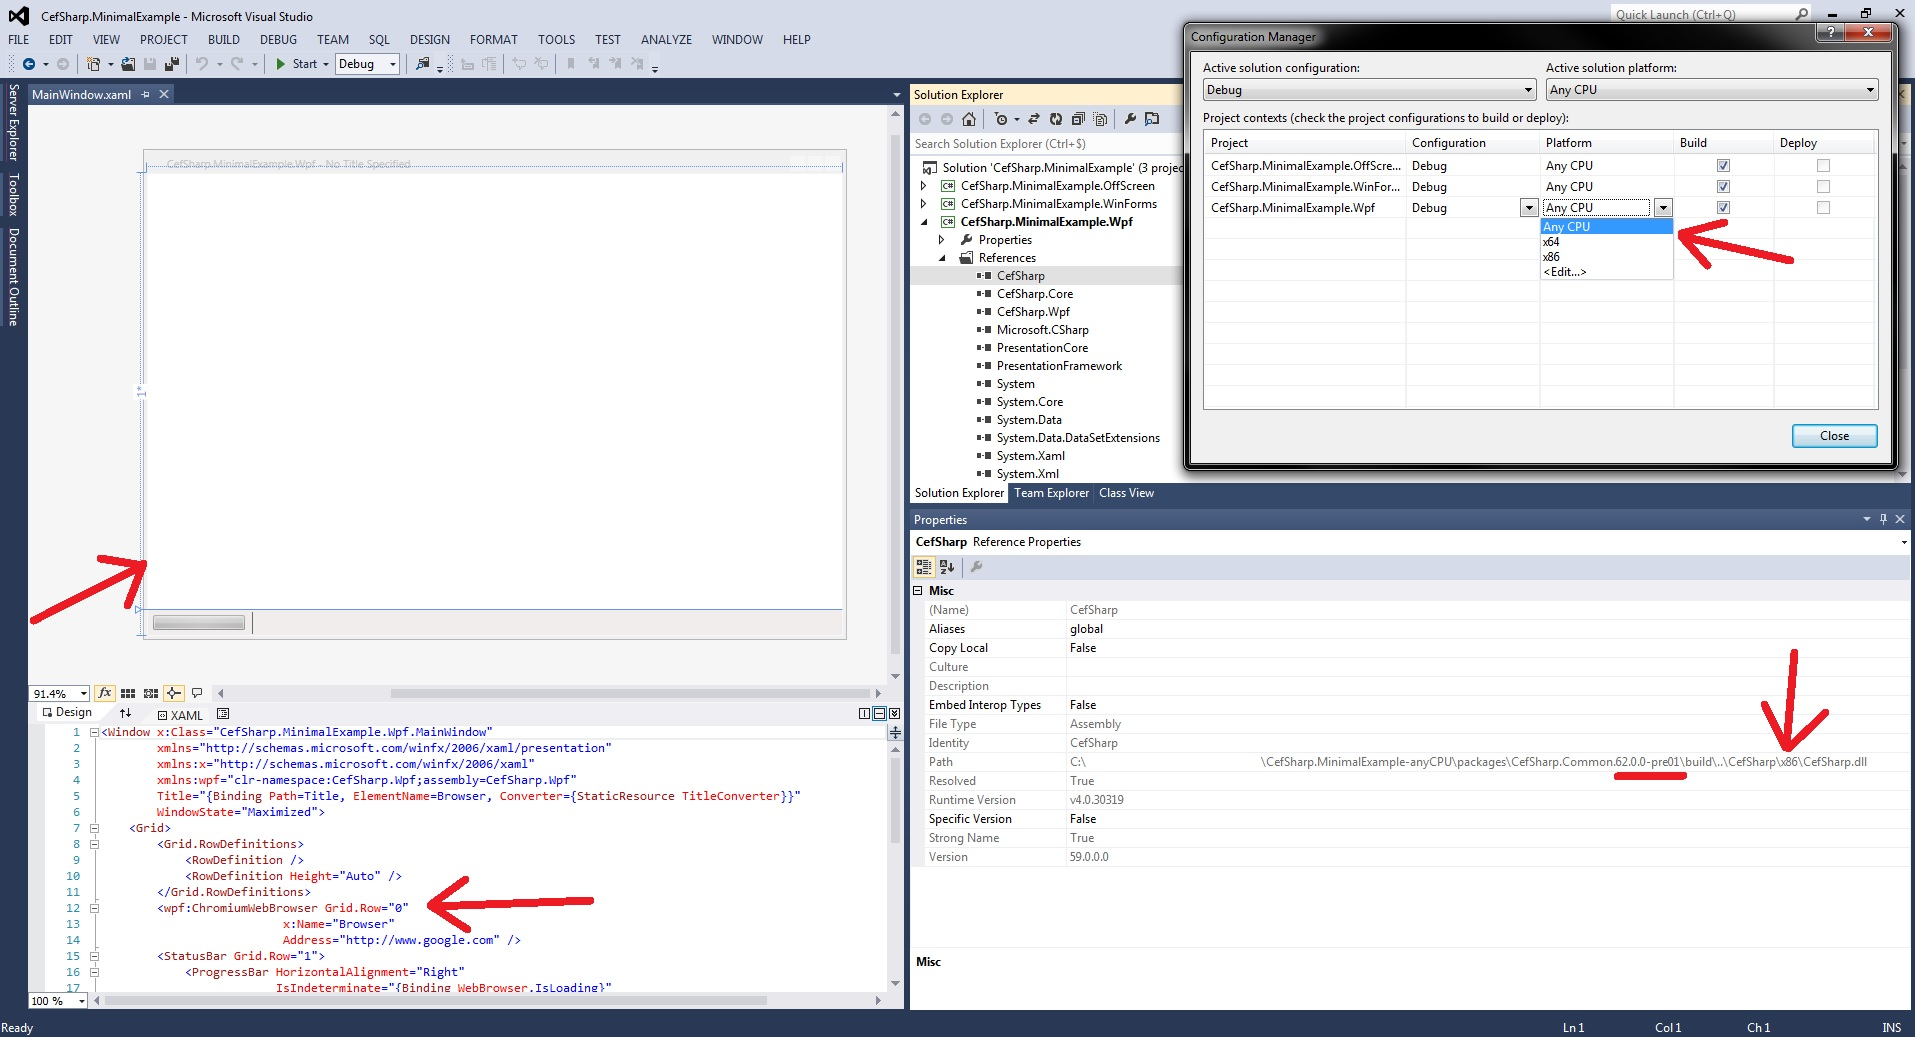 Visual Studio Designer issue when target is AnyCPU (63 0 0